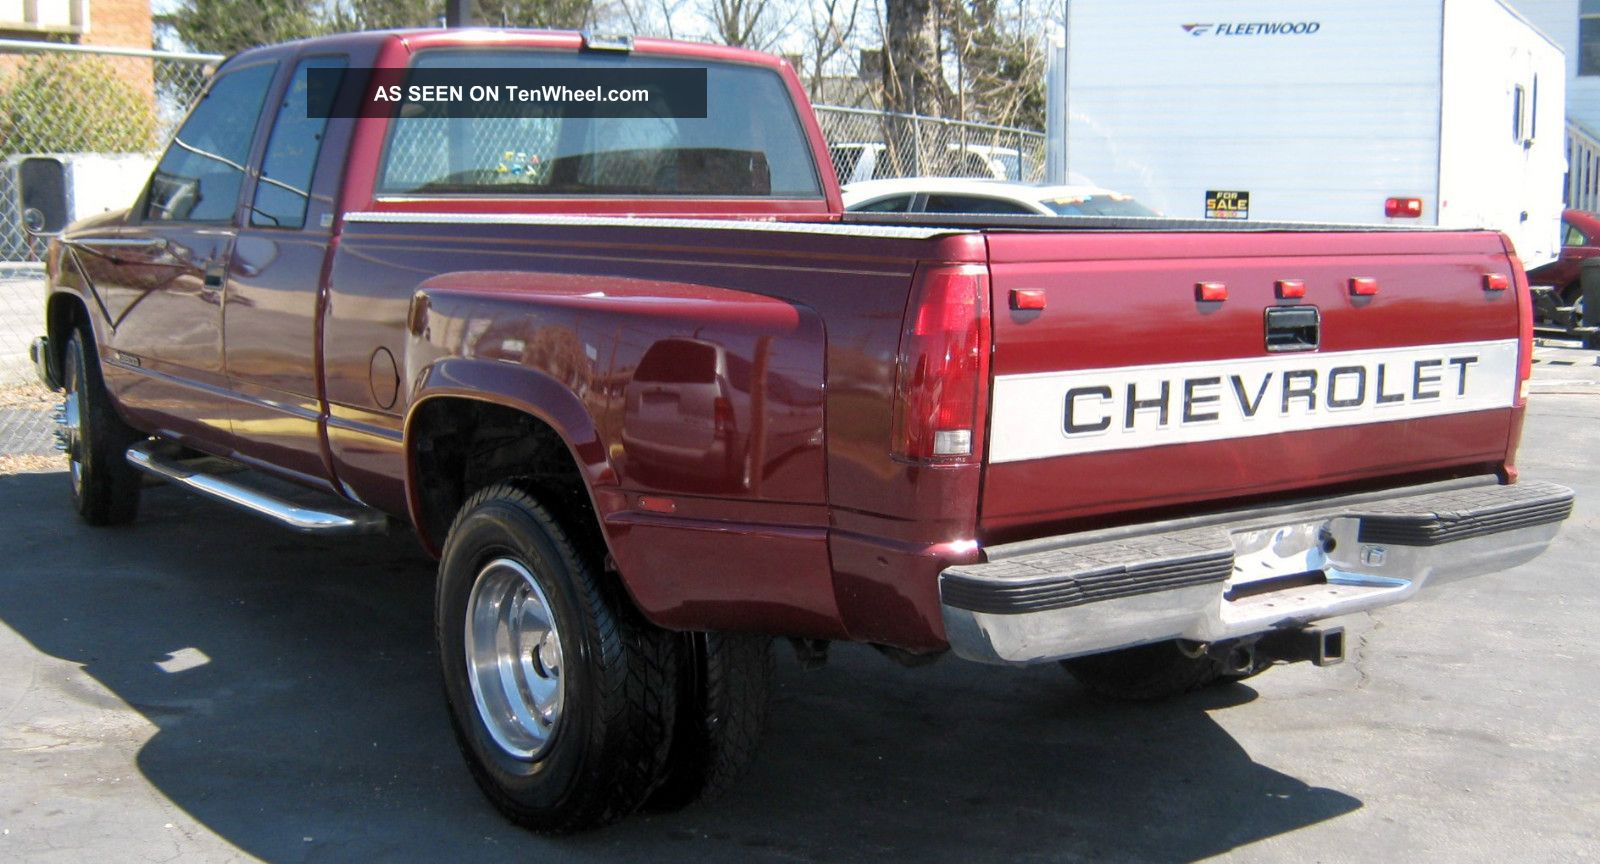 1989 Chevrolet C3500 Pickup Red Jasper 454 Engine With Papers 6 Tires C/K Pickup 3500 photo